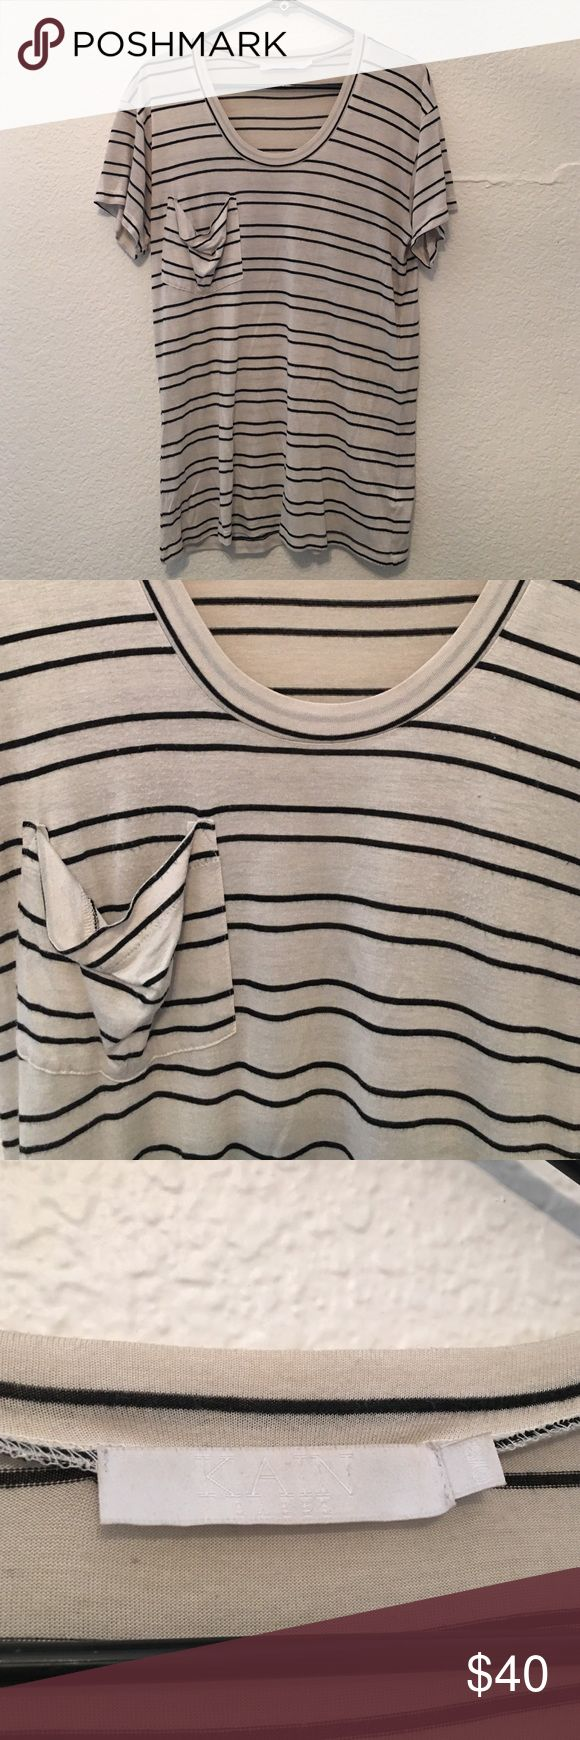 Kain Striped Slouchy Pocket Tee Kain striped slouchy pocket tee, one size. 100% modal. Great condition. Kain Tops Tees - Short Sleeve